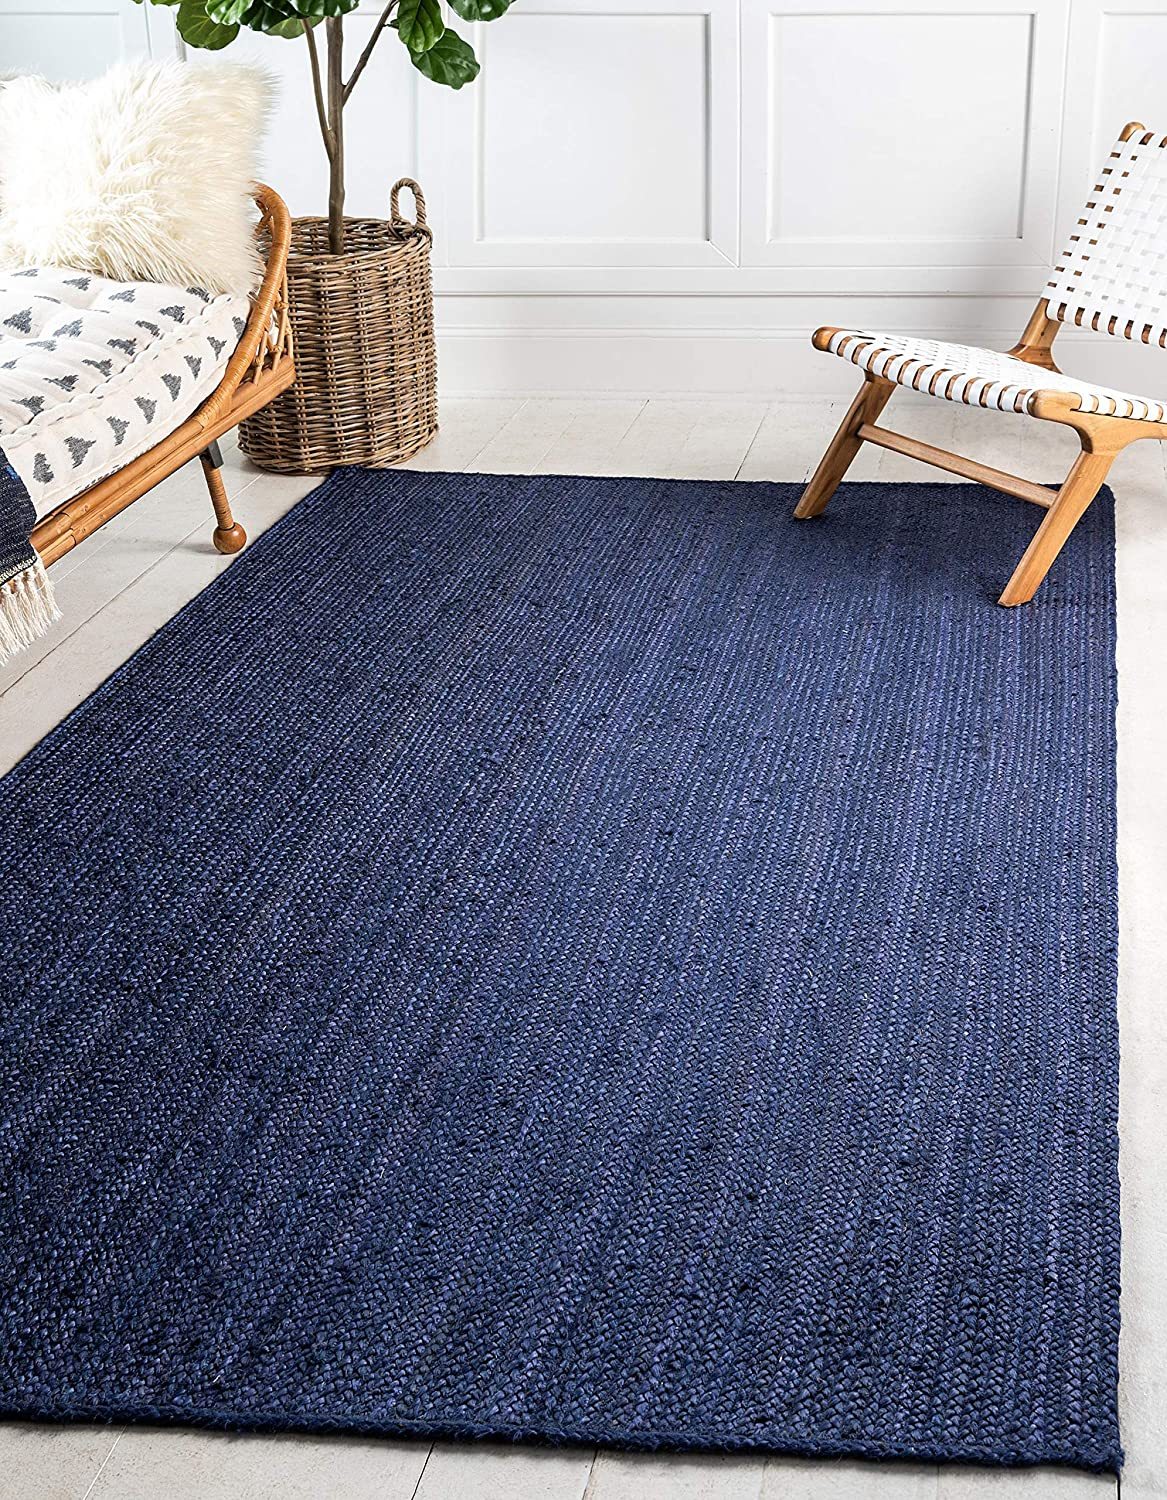 Navy bluee 2' x 3' Rectangle Unique Loom Braided Jute Collection Hand Woven Natural Fibers Navy bluee Runner Rug (3' x 6')